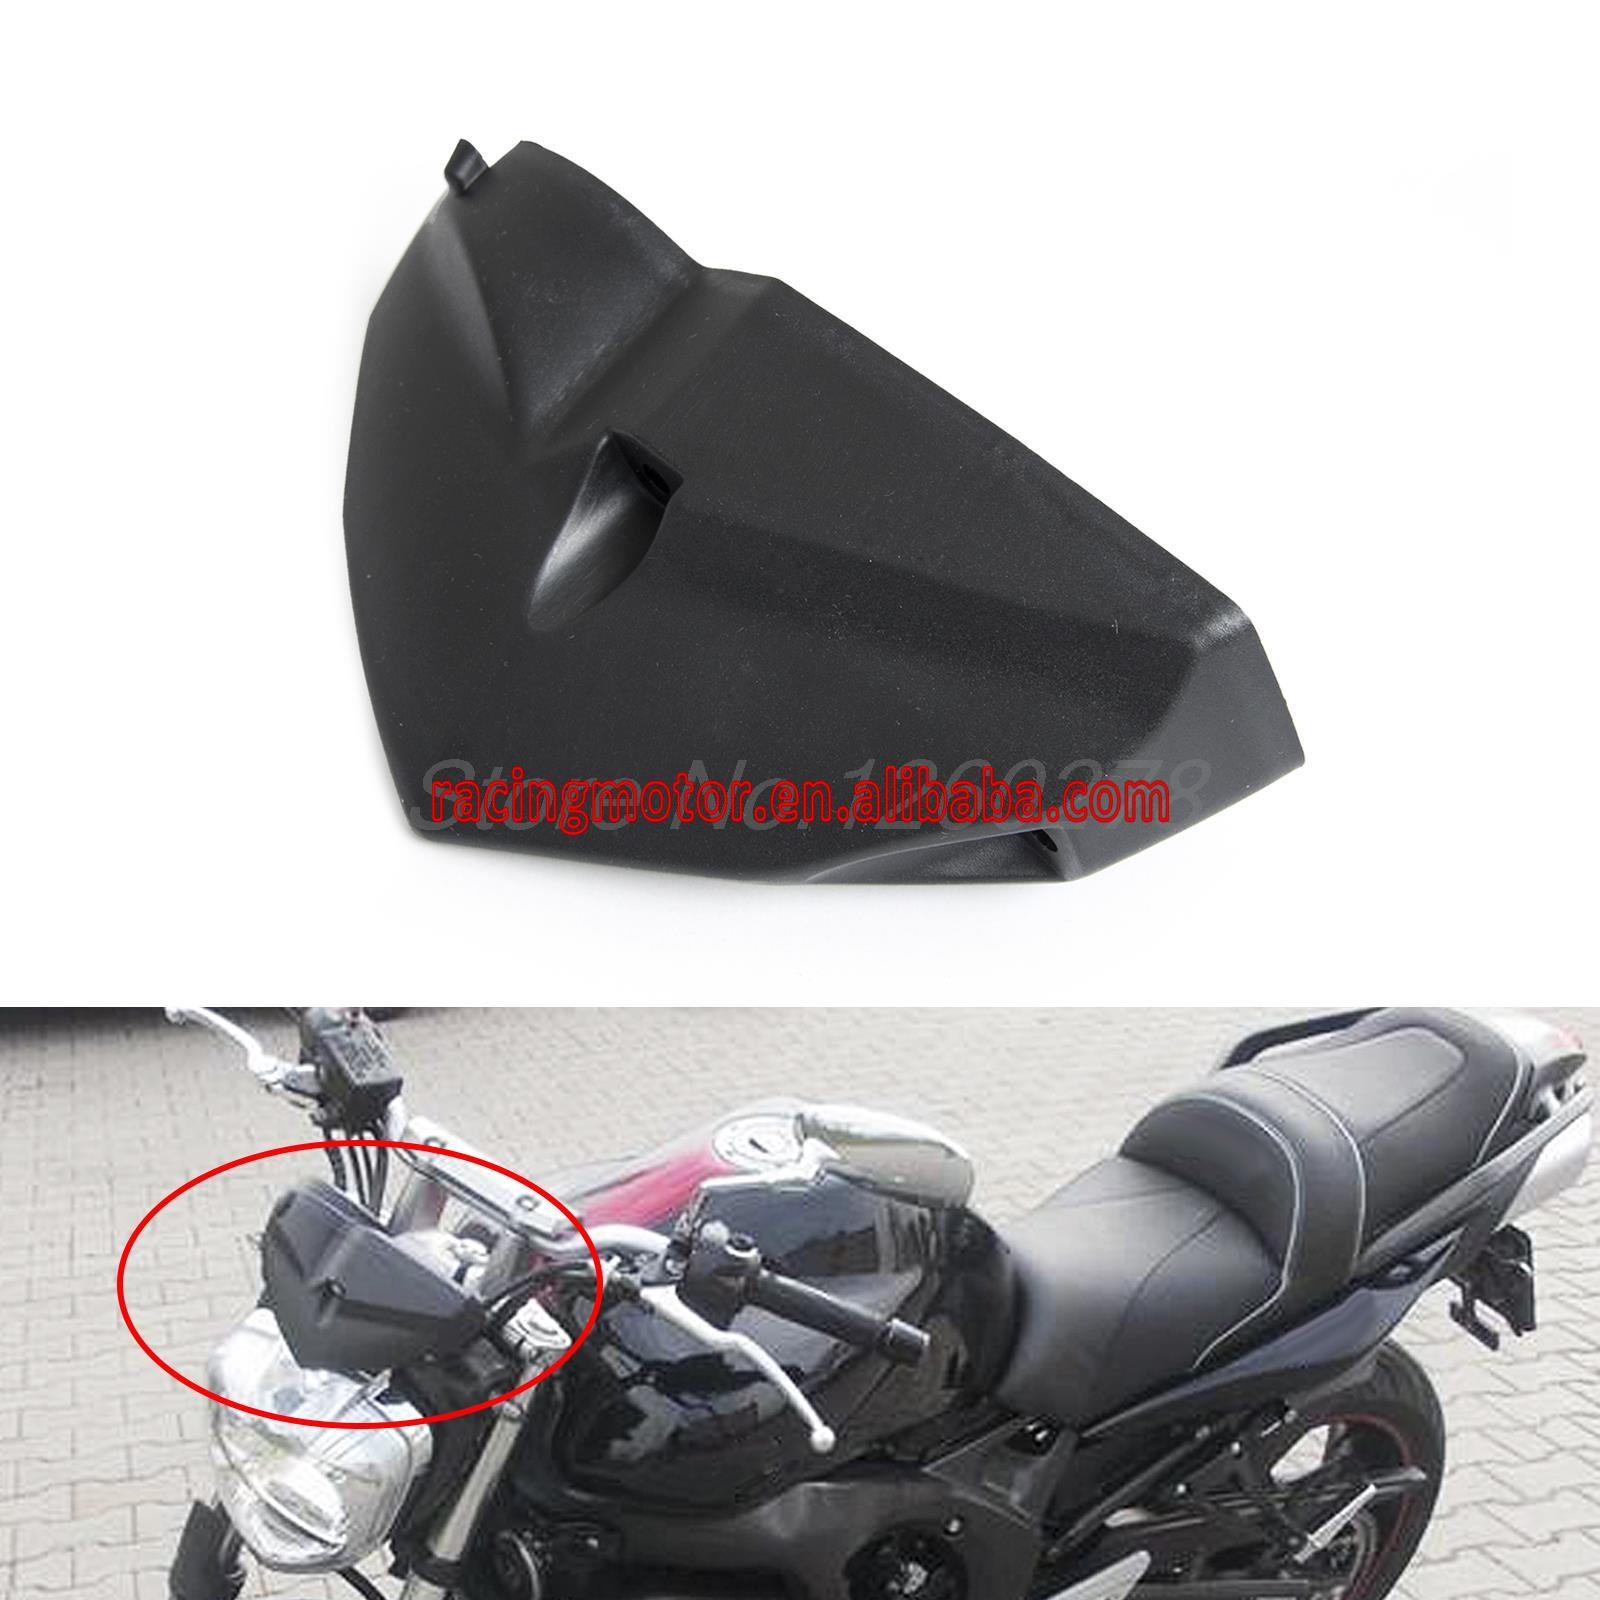 New black Speedometer Gauge Case Cover For Yamaha FZ1N FZ1-N FZ-1N 2006 - 2012 2010 2011 FZ6-N FZ6N FZ-6N 2007 2008 2009 NEW car rear trunk security shield shade cargo cover for hyundai tucson 2006 2007 2008 2009 2010 2011 2012 2013 2014 black beige